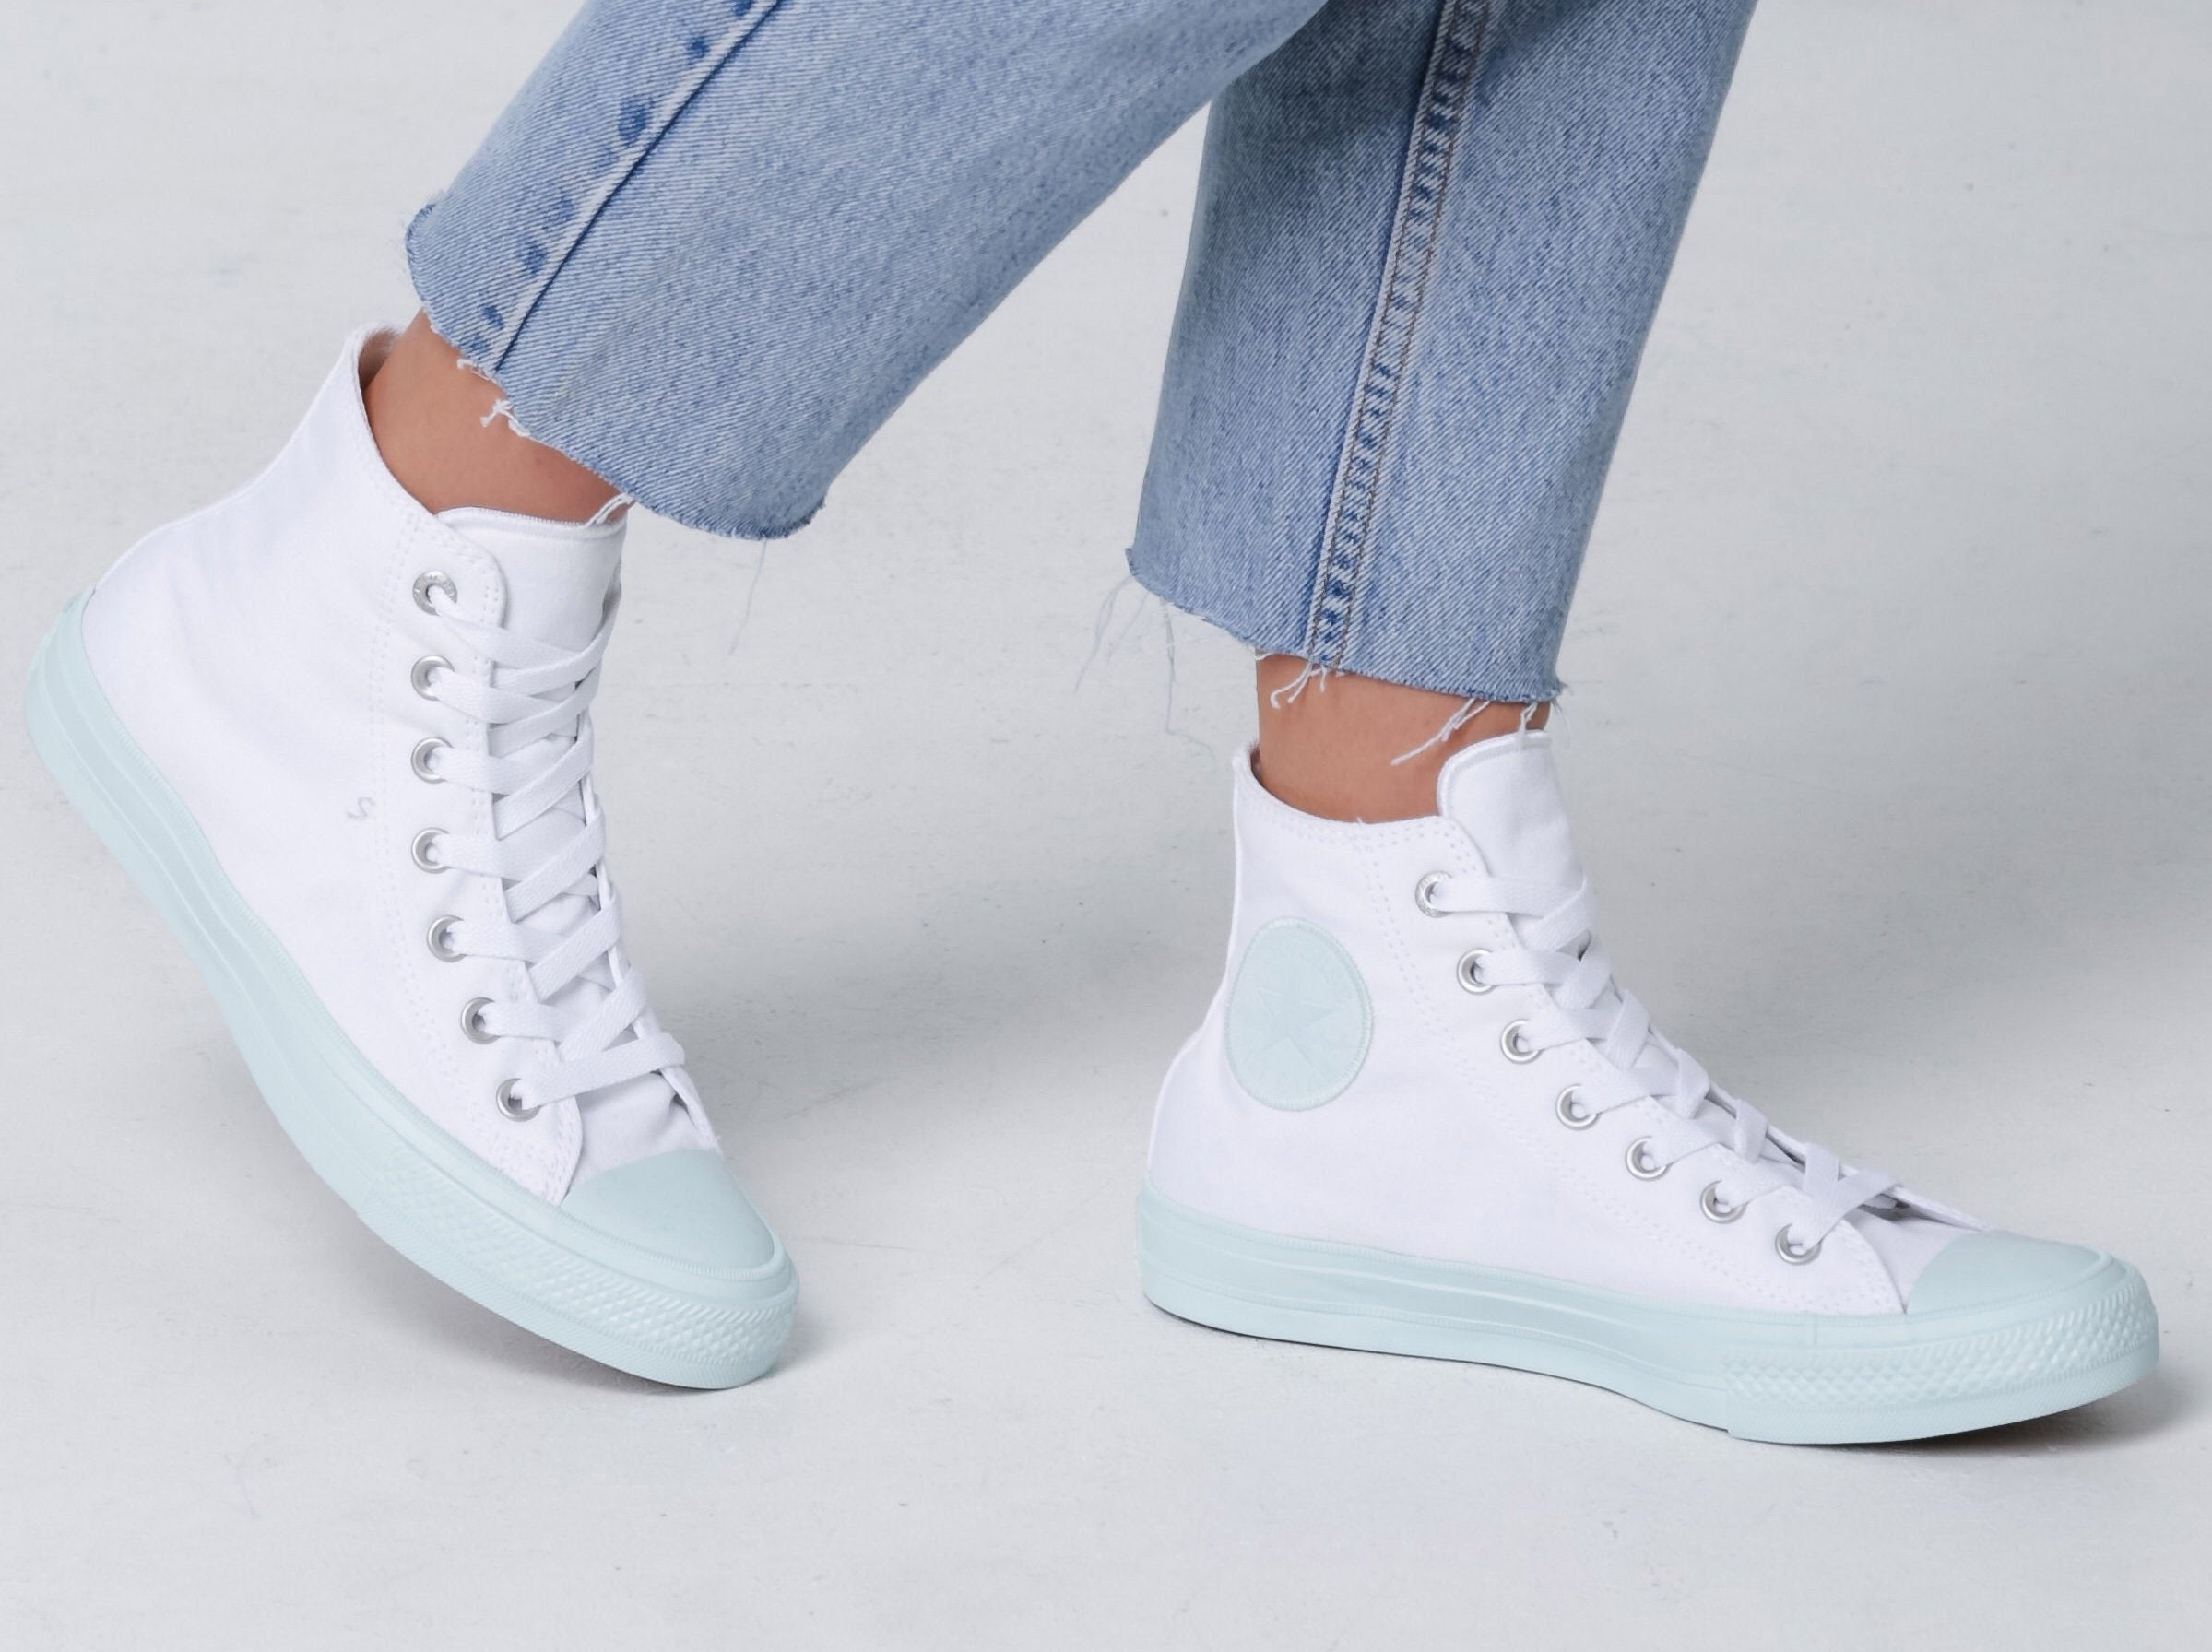 7303311ff73e7c White Converse High Top Fiberglass Aqua Mint Custom Bling w  Swarovski  Crystal Rhinestone Kicks Chuck Taylor II All Star Bride Sneakers Shoe